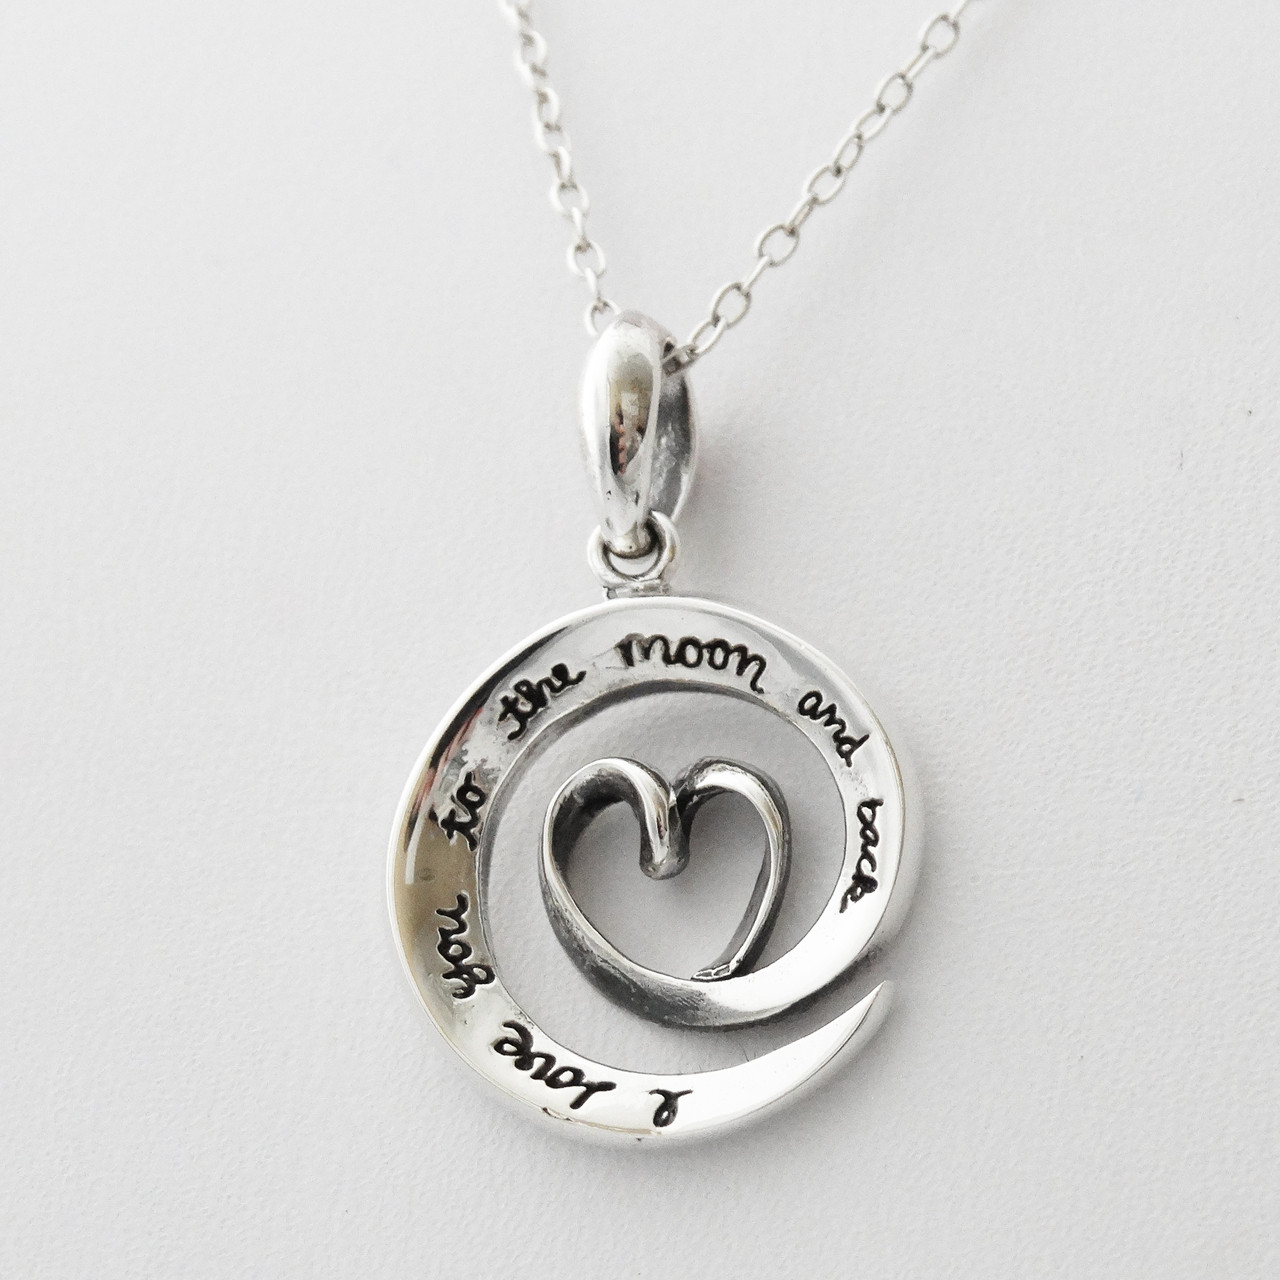 .925 Sterling Silver I Love You Charm Pendant